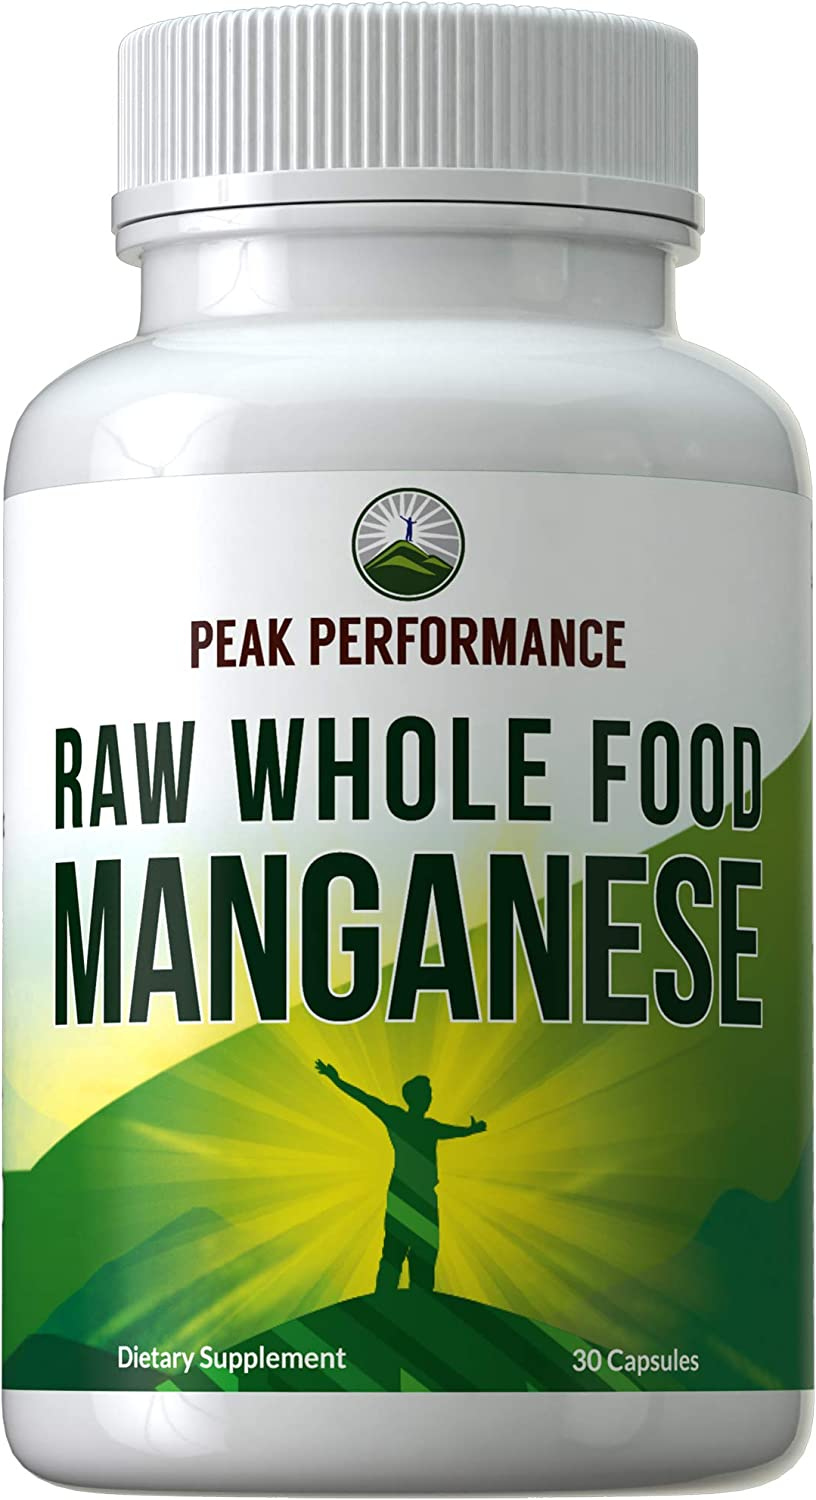 Raw Whole Food Manganese Supplement - Pure Trace Mineral Capsules for Connective Tissue, Bone Health and Enzyme Support. Blended with 25+ Organic Vegetables and Fruits. Superior Absorption. 30 Pills